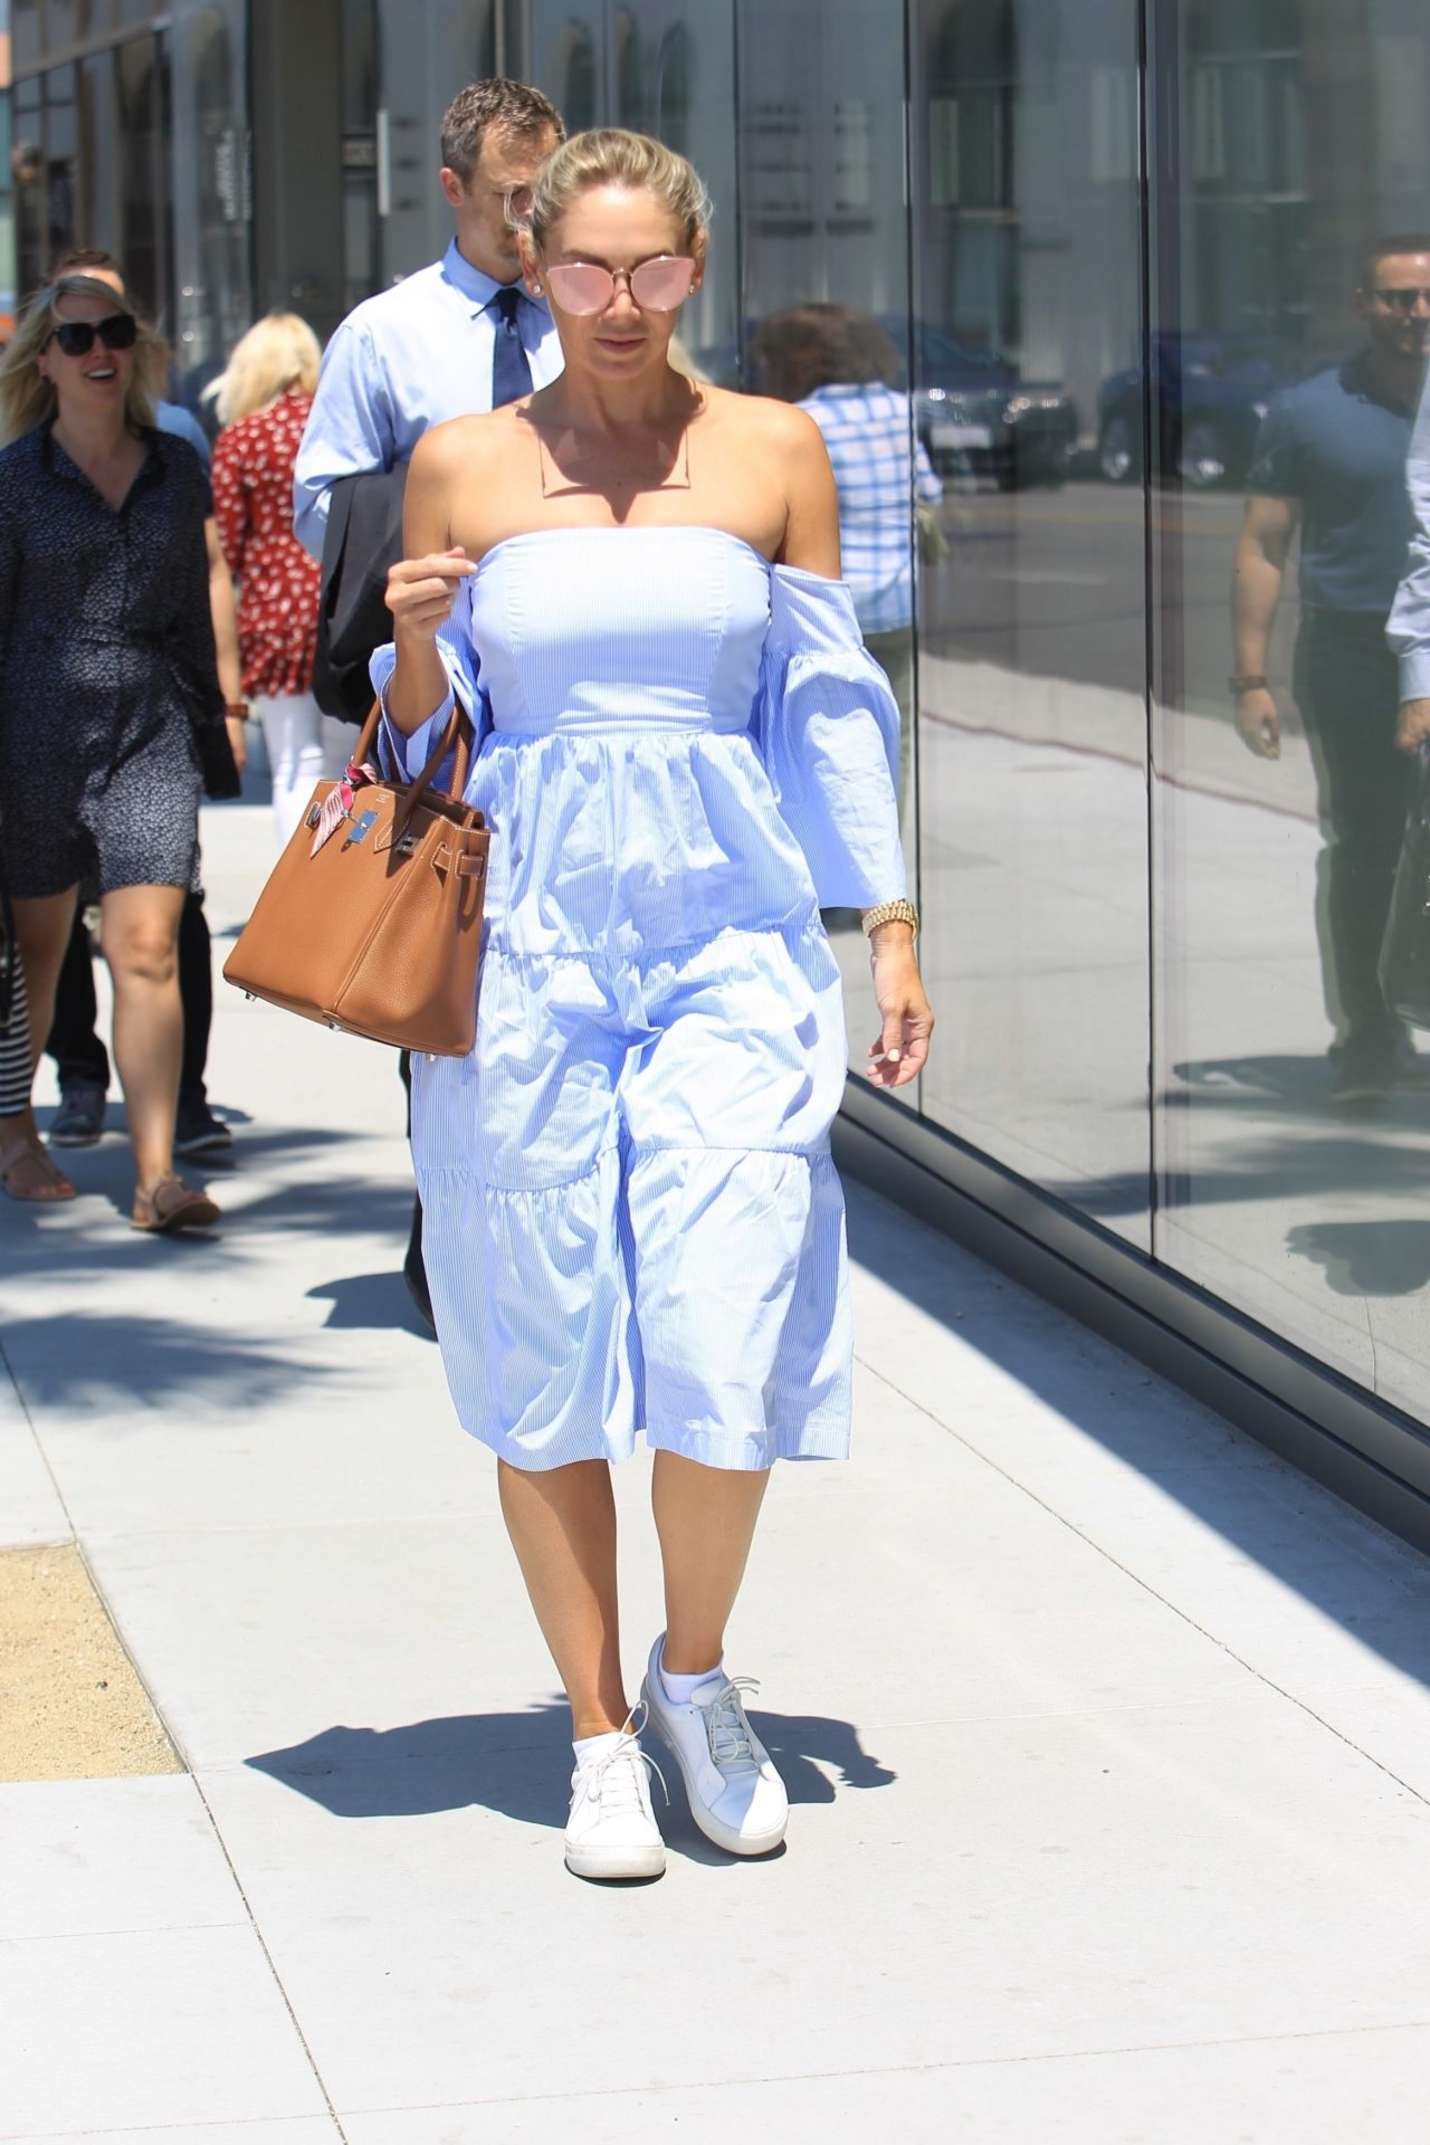 Kym johnson shopping in beverly hills nude (72 images)